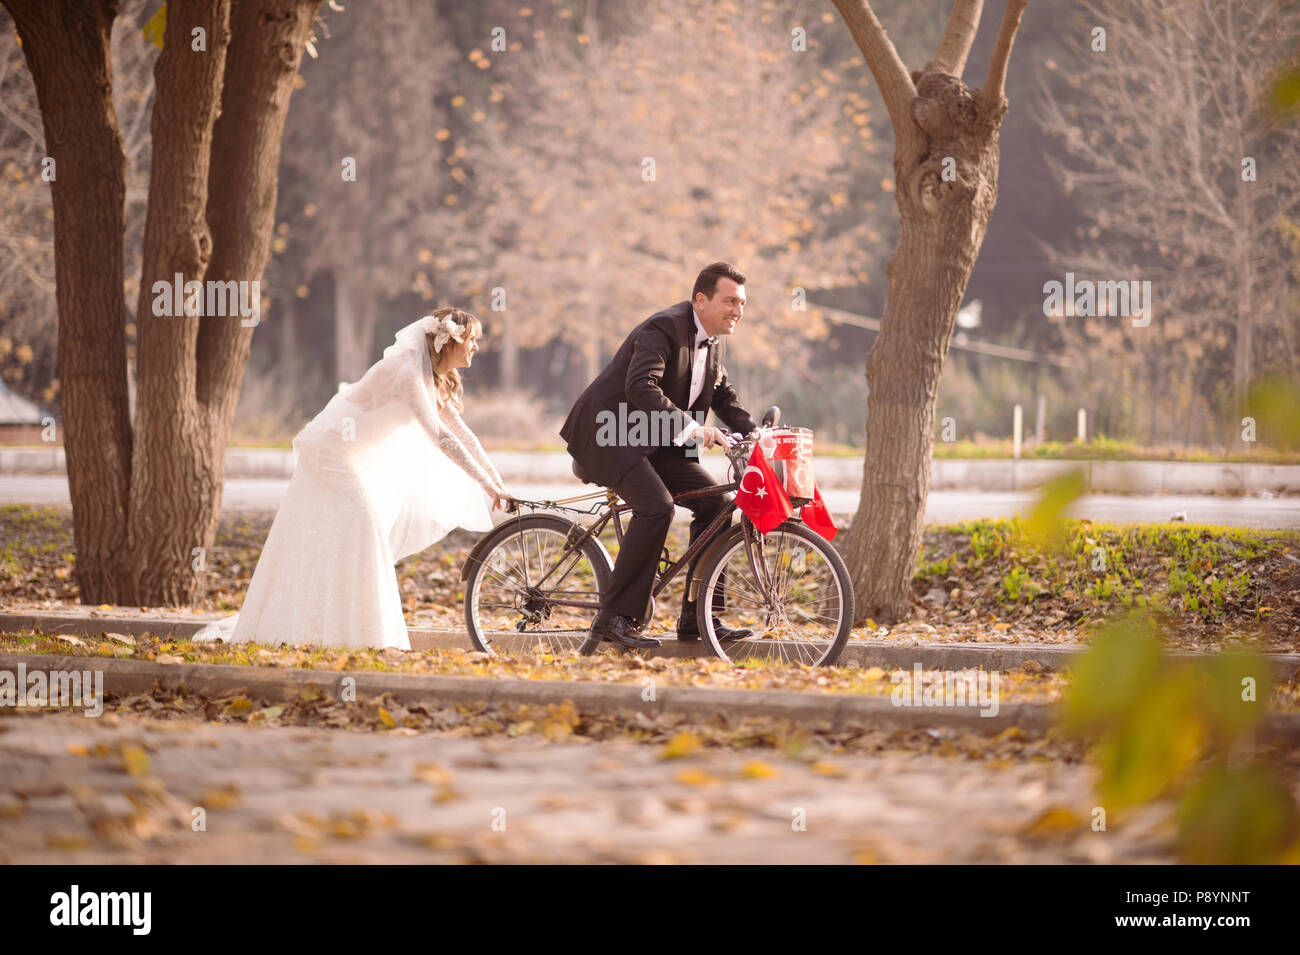 Wedding Bride And Groom Bridegroom Funny Wedding Photo Love Marriage